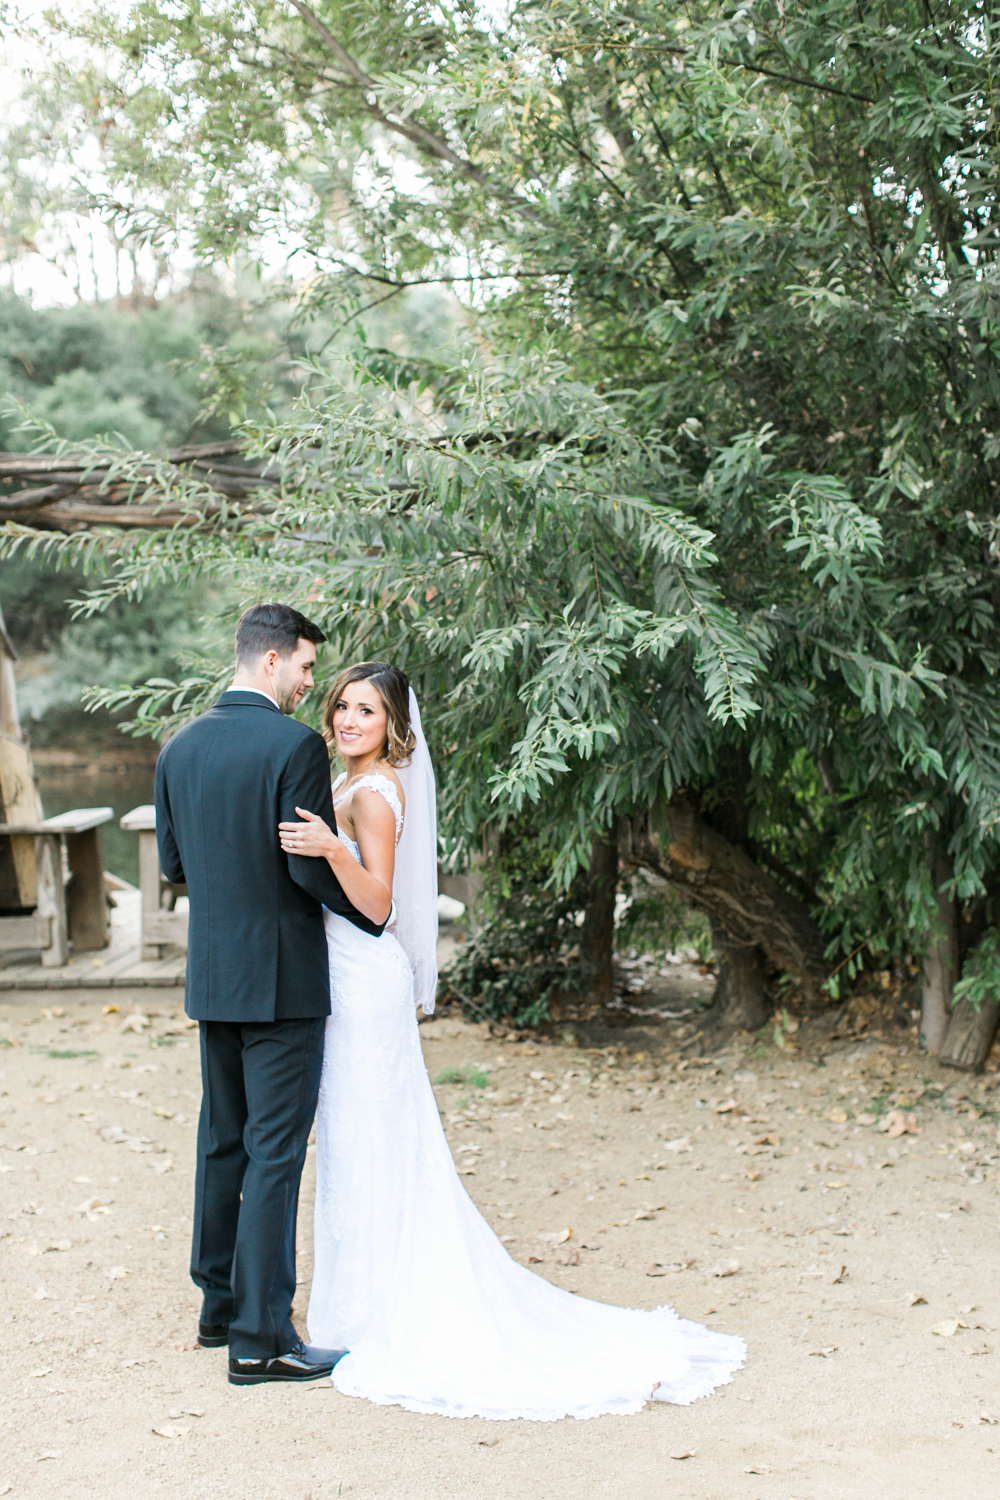 Bride and Groom during wedding at Calamigos Ranch Redwood Room.